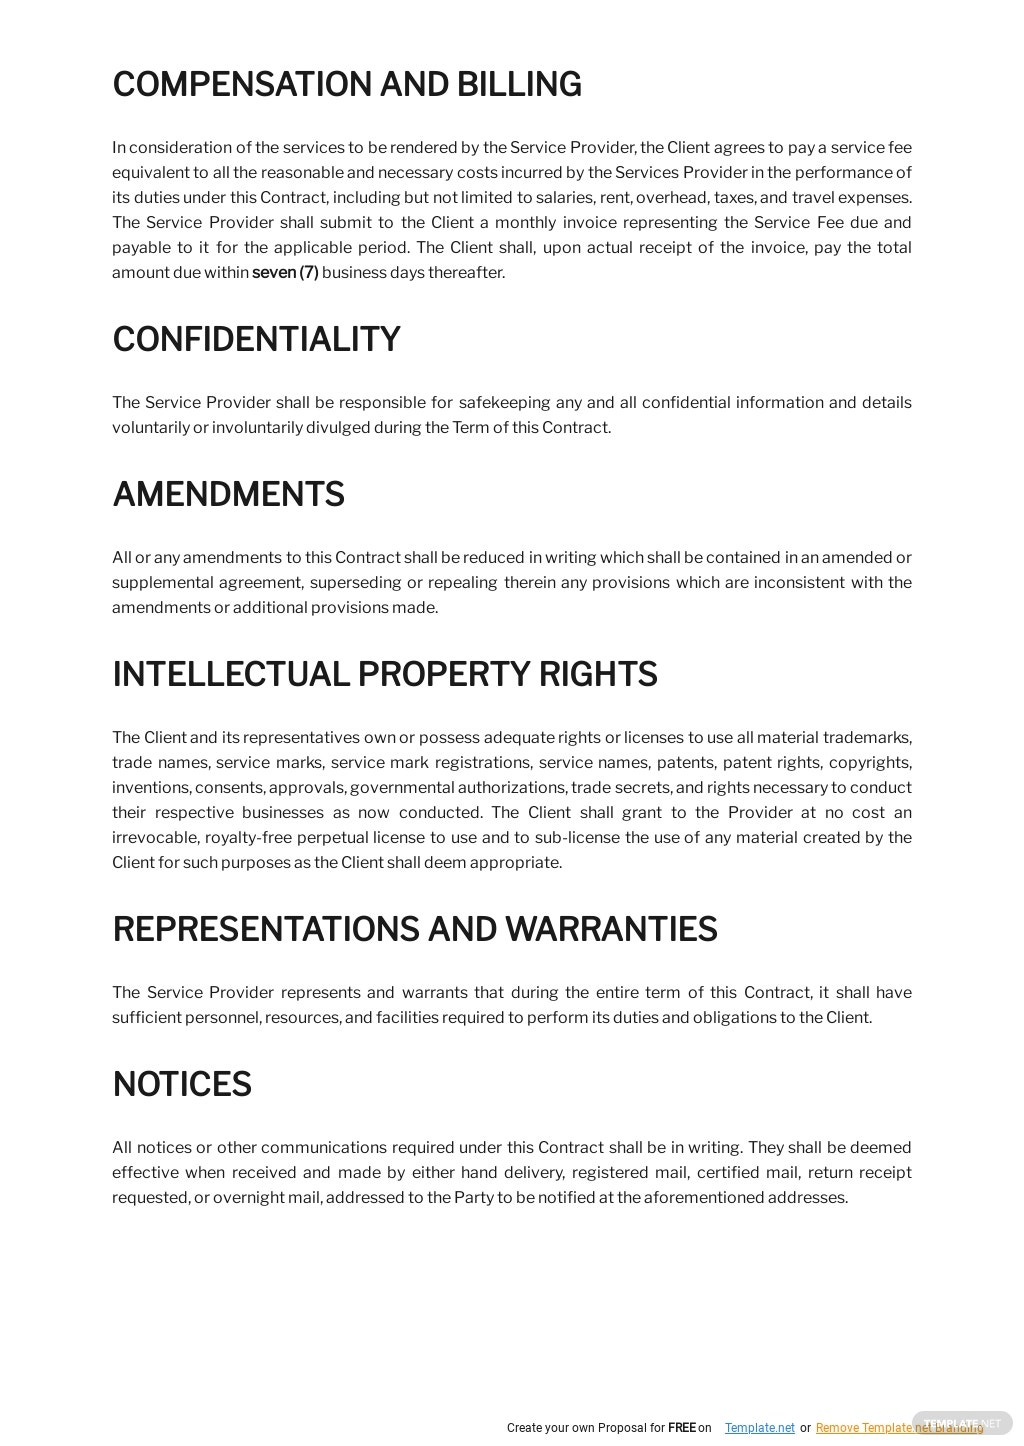 Service Agreement Contract Template 3.jpe